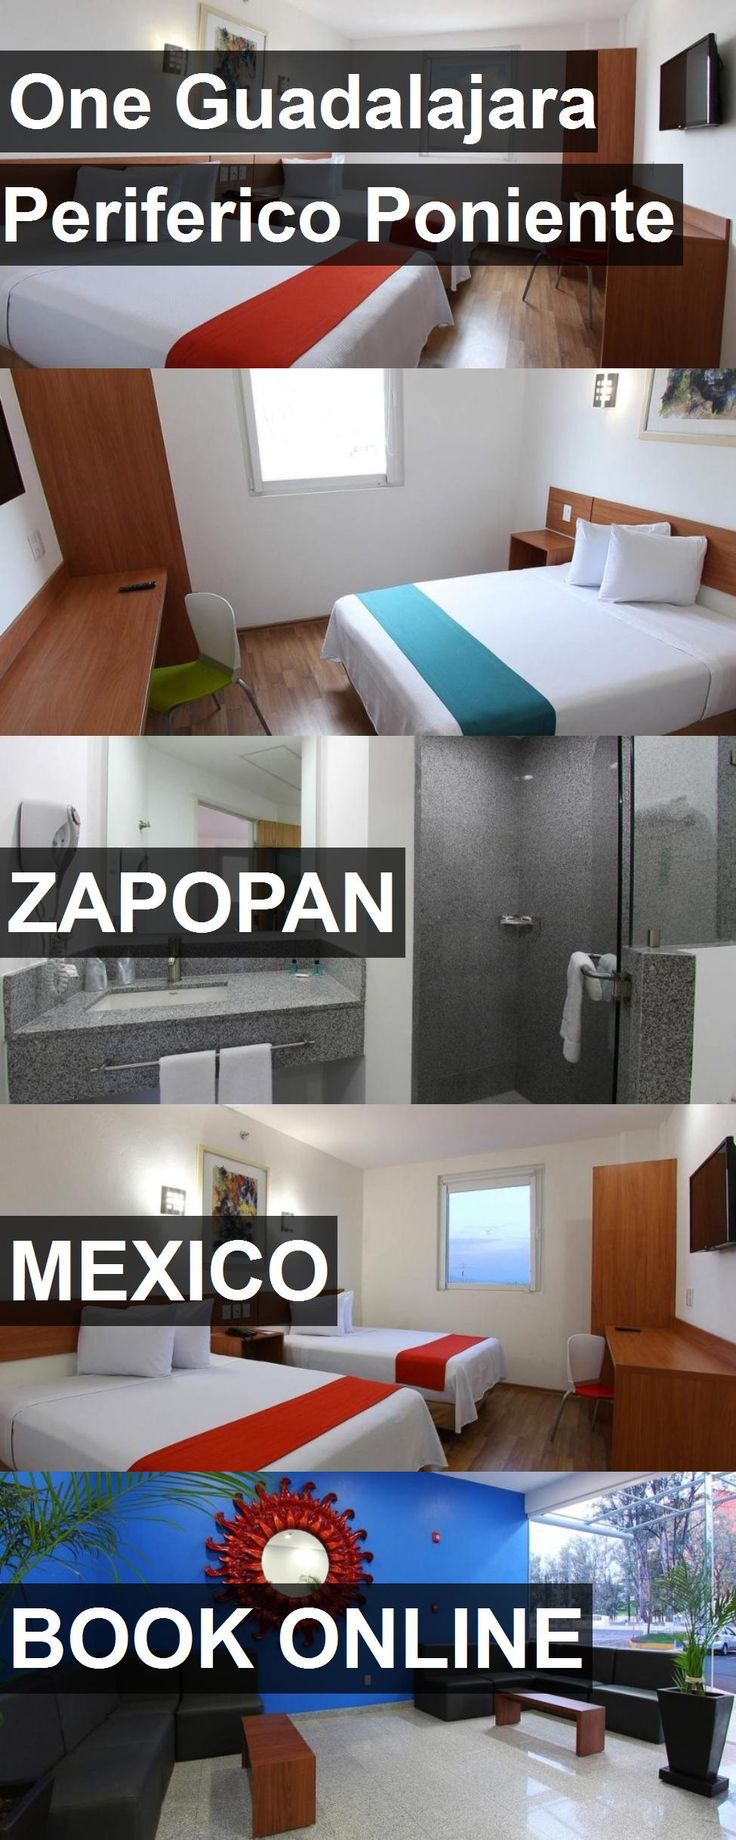 Hotel One Guadalajara Periferico Poniente in Zapopan, Mexico. For more information, photos, reviews and best prices please follow the link. #Mexico #Zapopan #travel #vacation #hotel